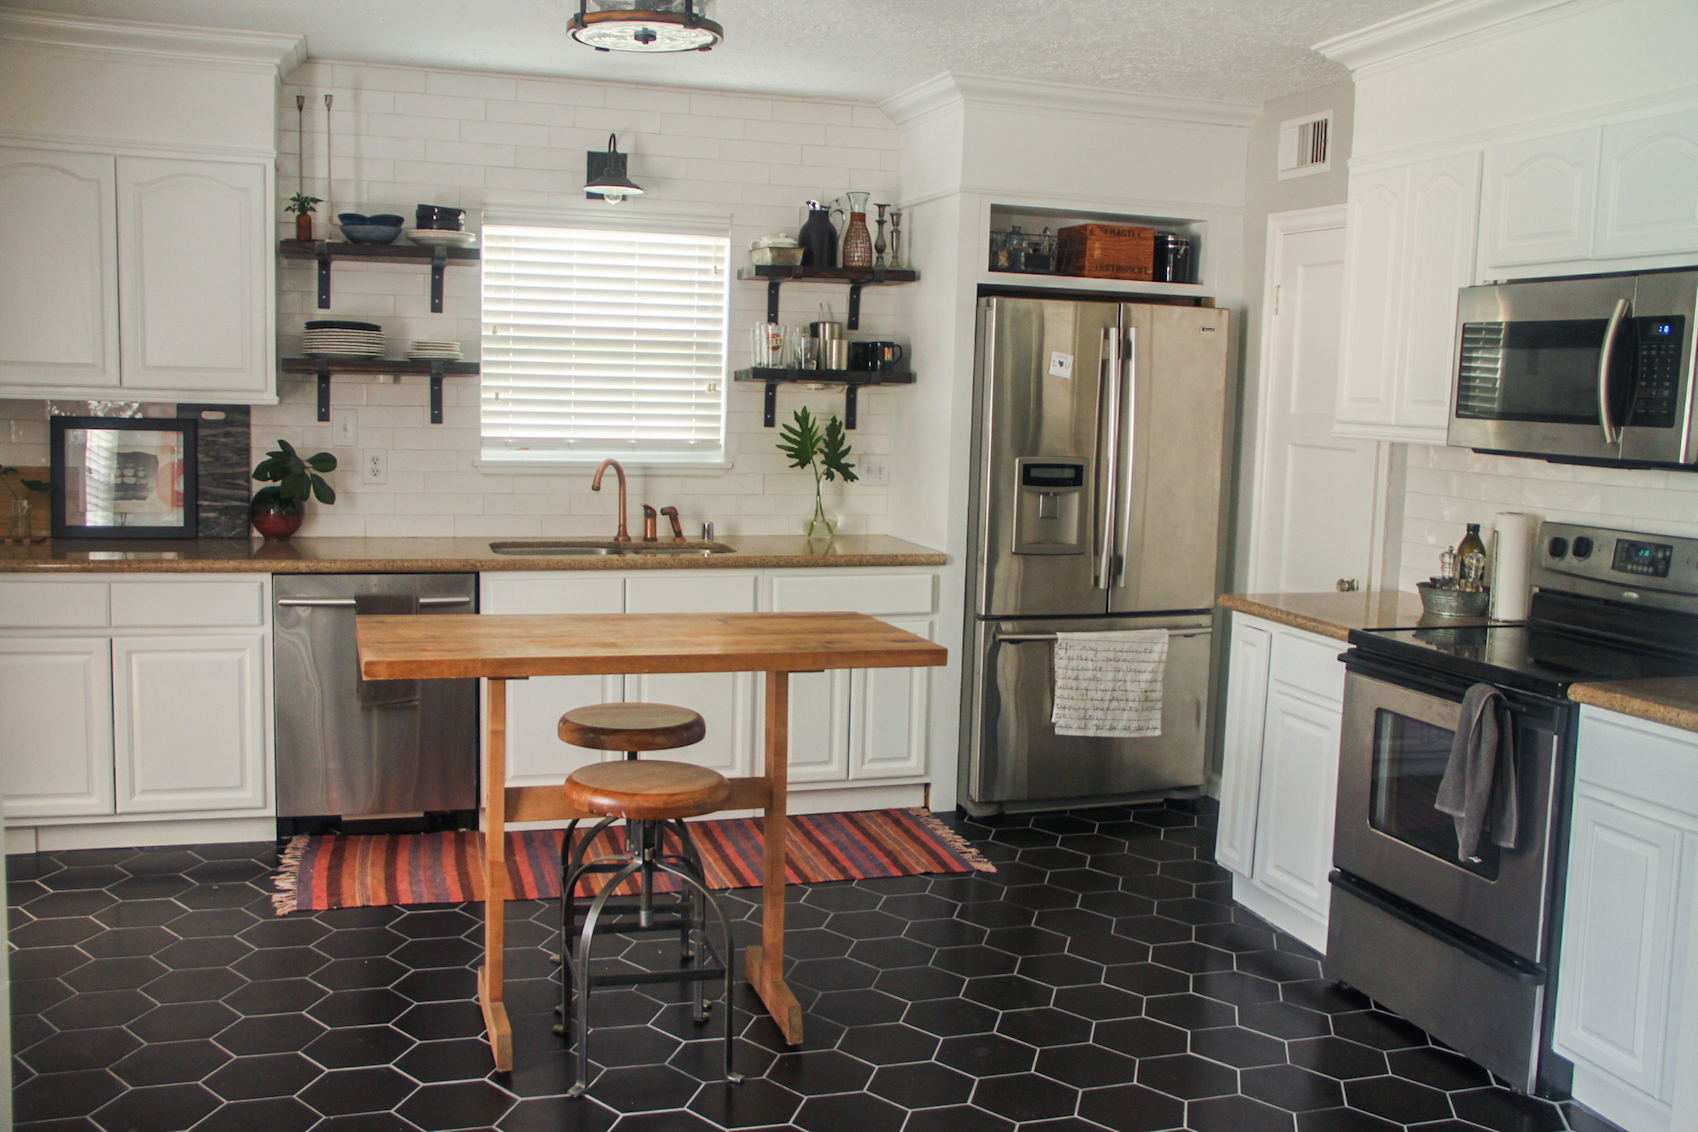 Where Your Money Goes In A Kitchen Remodel: Before & After: A Kitchen Goes From Rarely Used To The